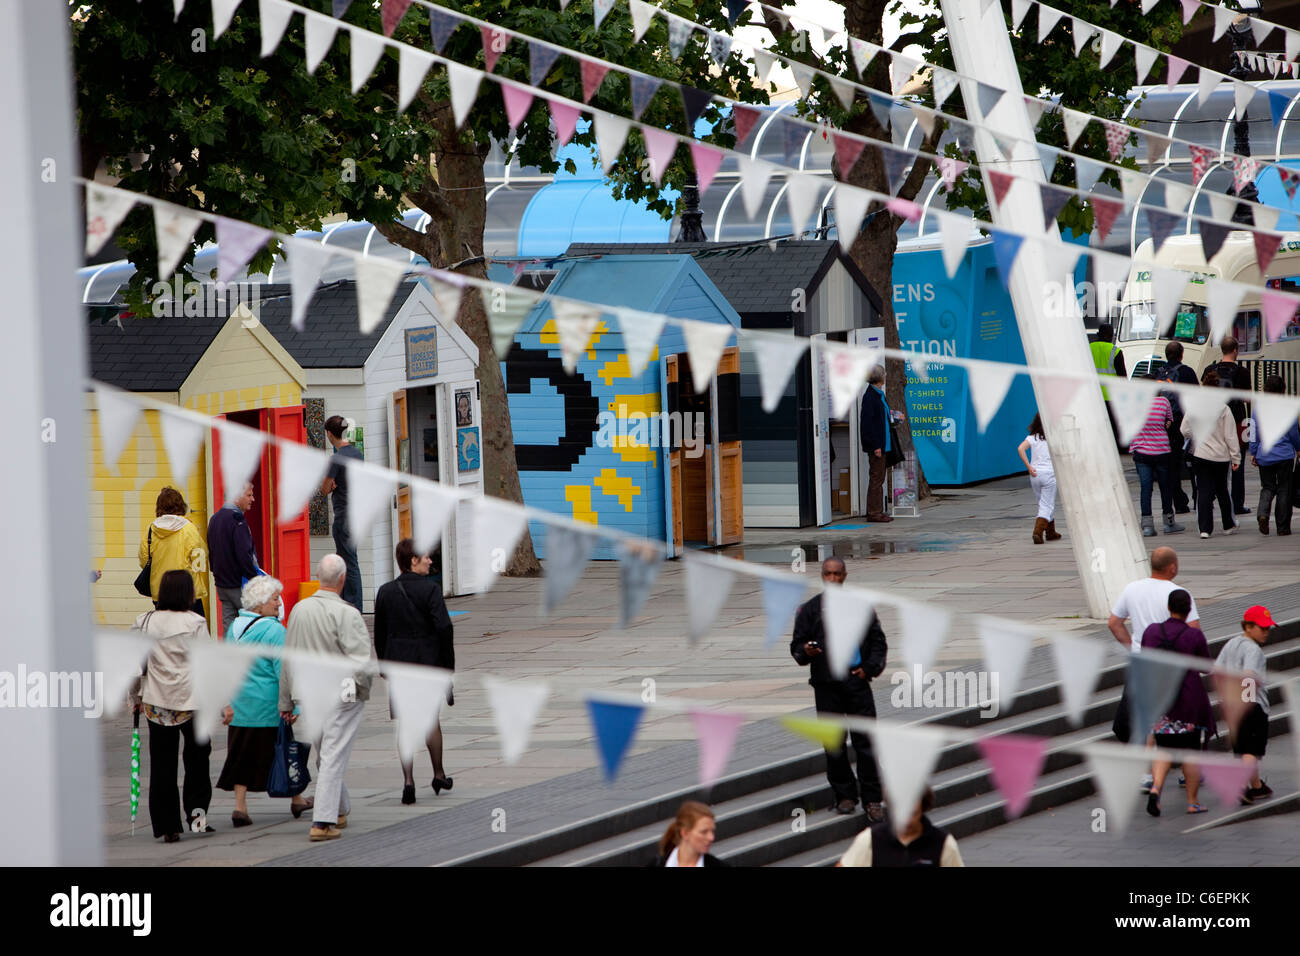 Tourists wander amongst the art installations and bunting on the Southbank, London. - Stock Image